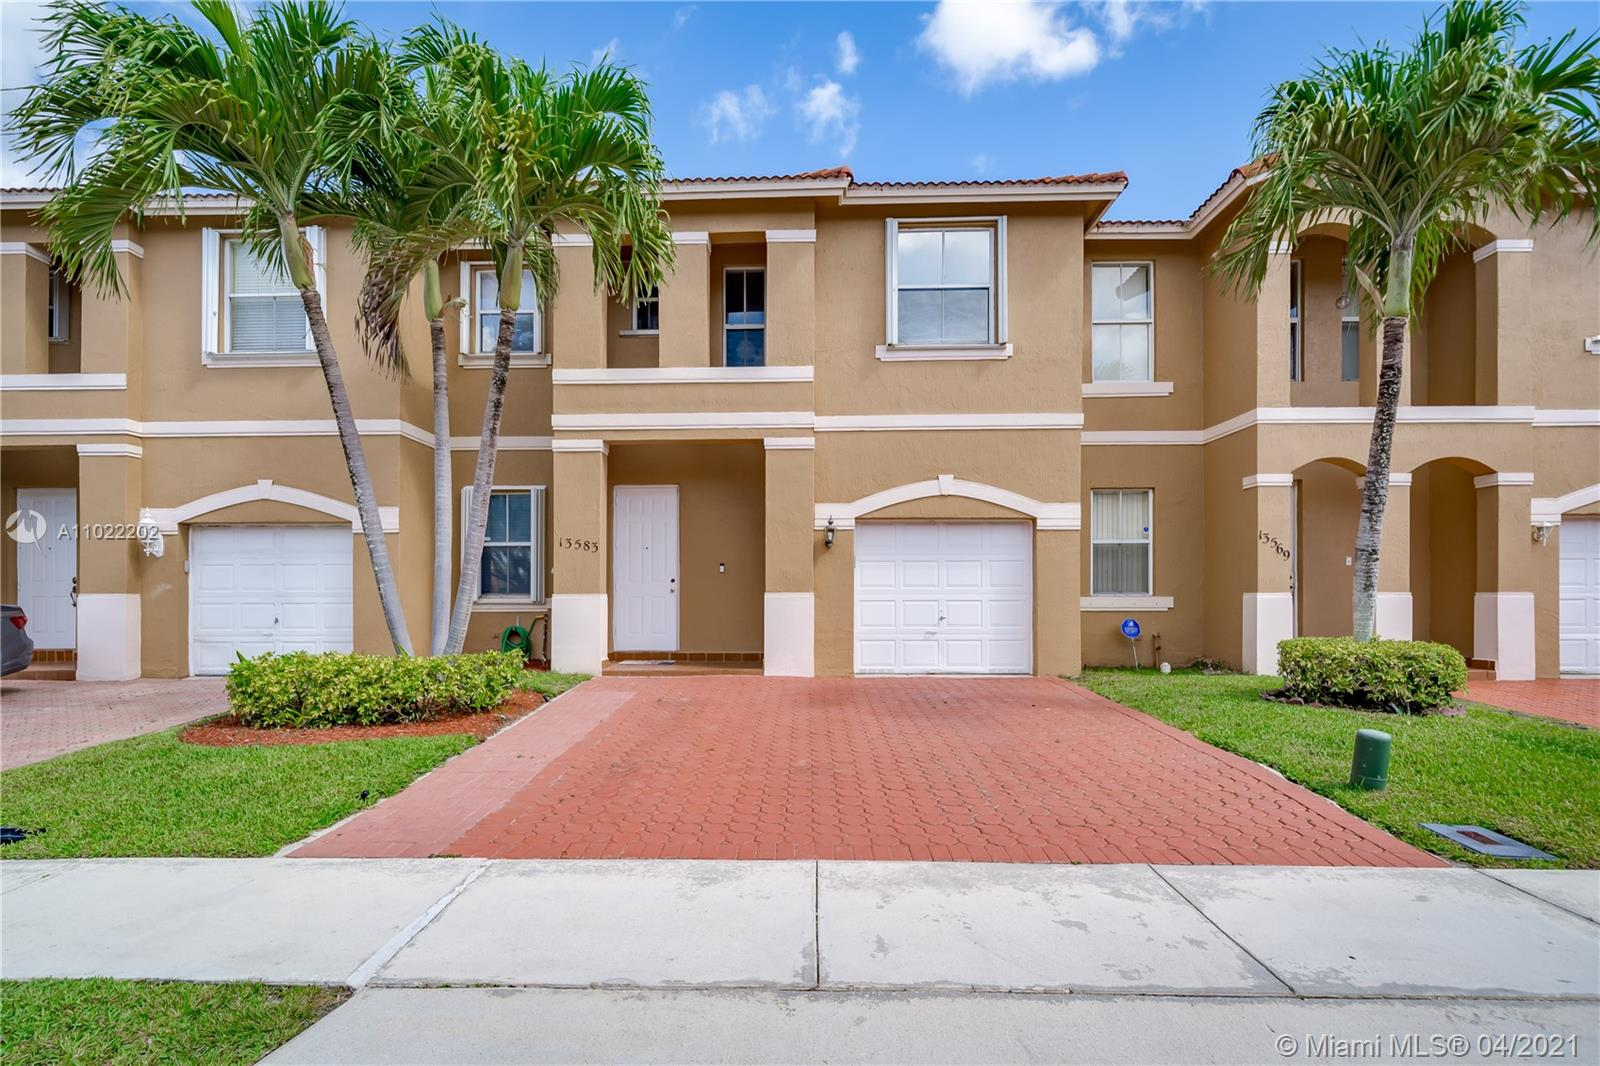 Property for sale at 13583 NW 9th St Unit: 13583, Pembroke Pines,  Florida 33028